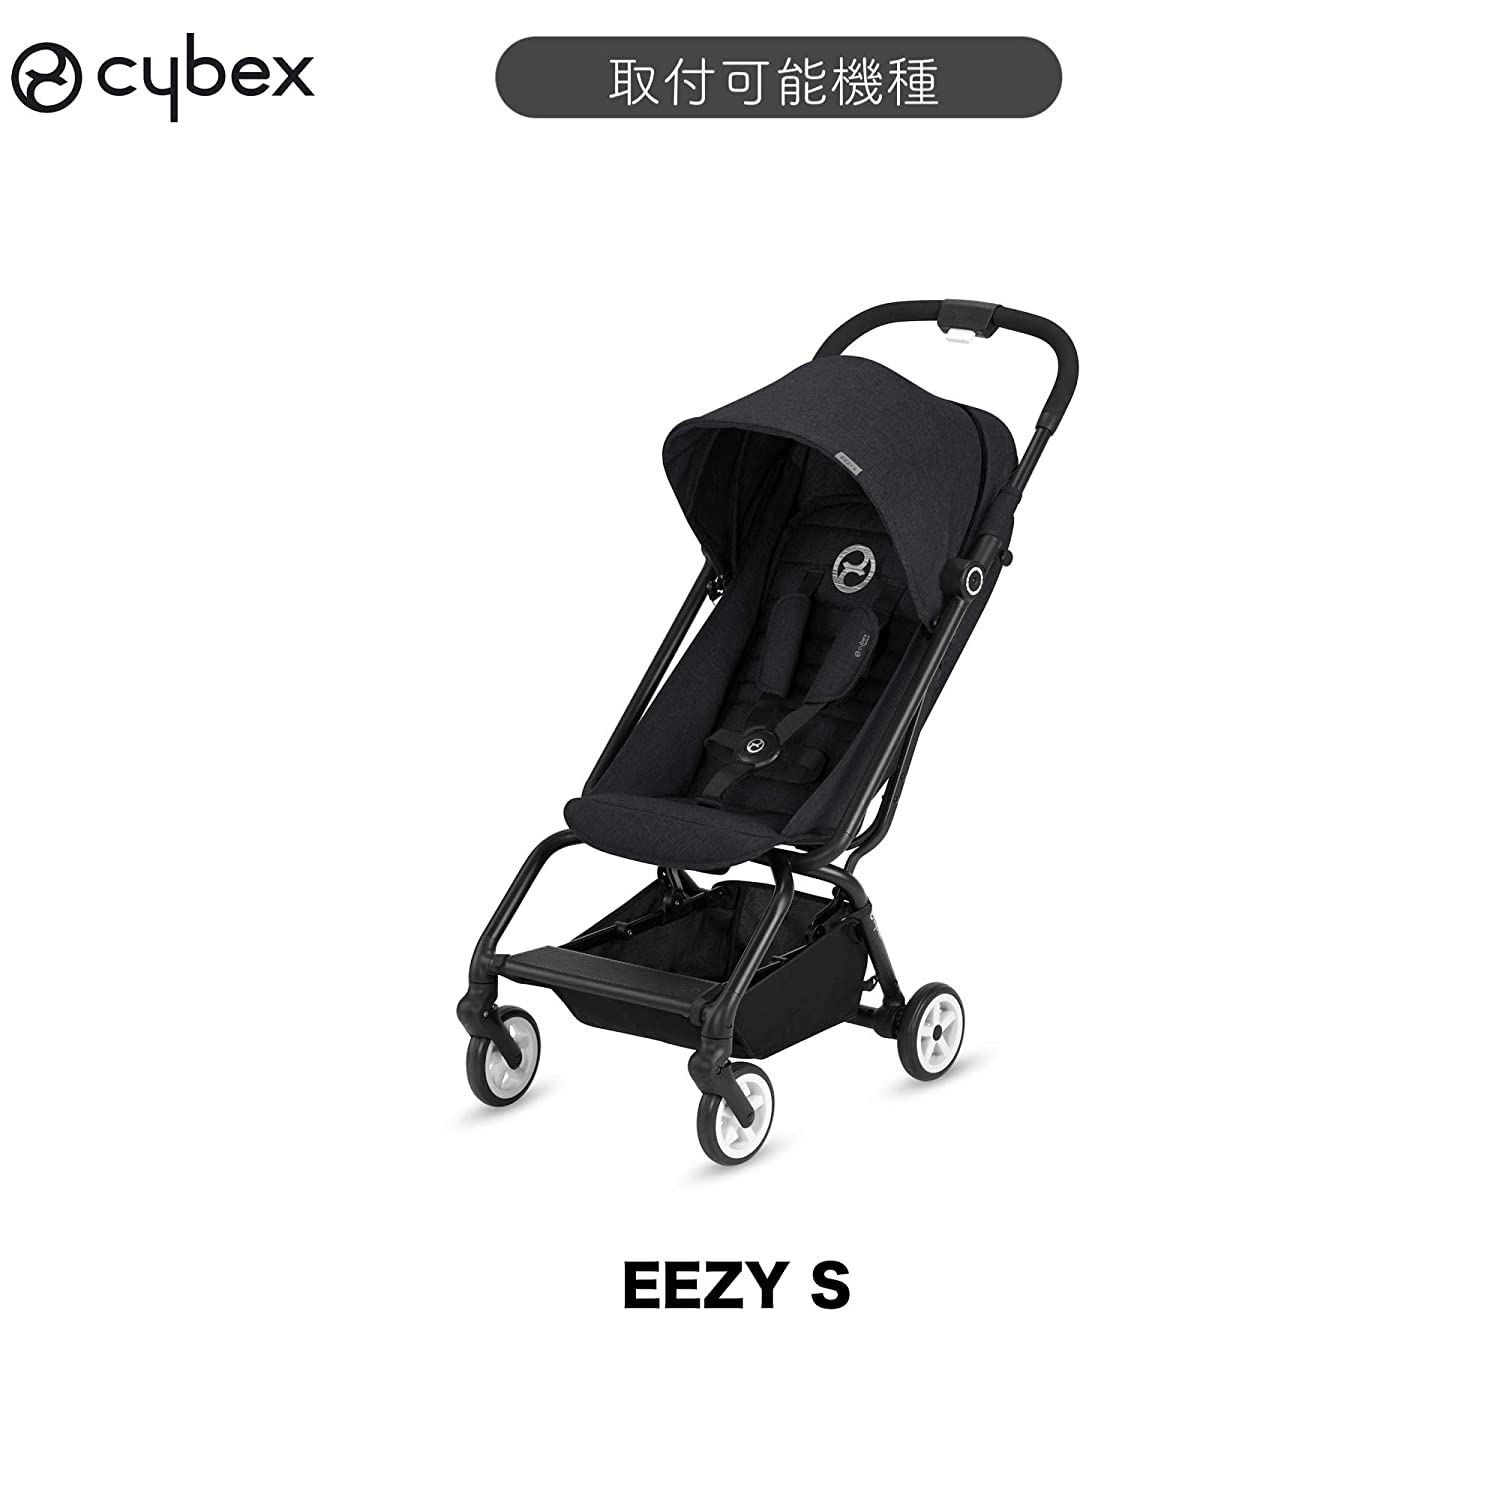 Black CYBEX Gold Safety Bar For CYBEX Pushchairs Eezy S and Eezy S+